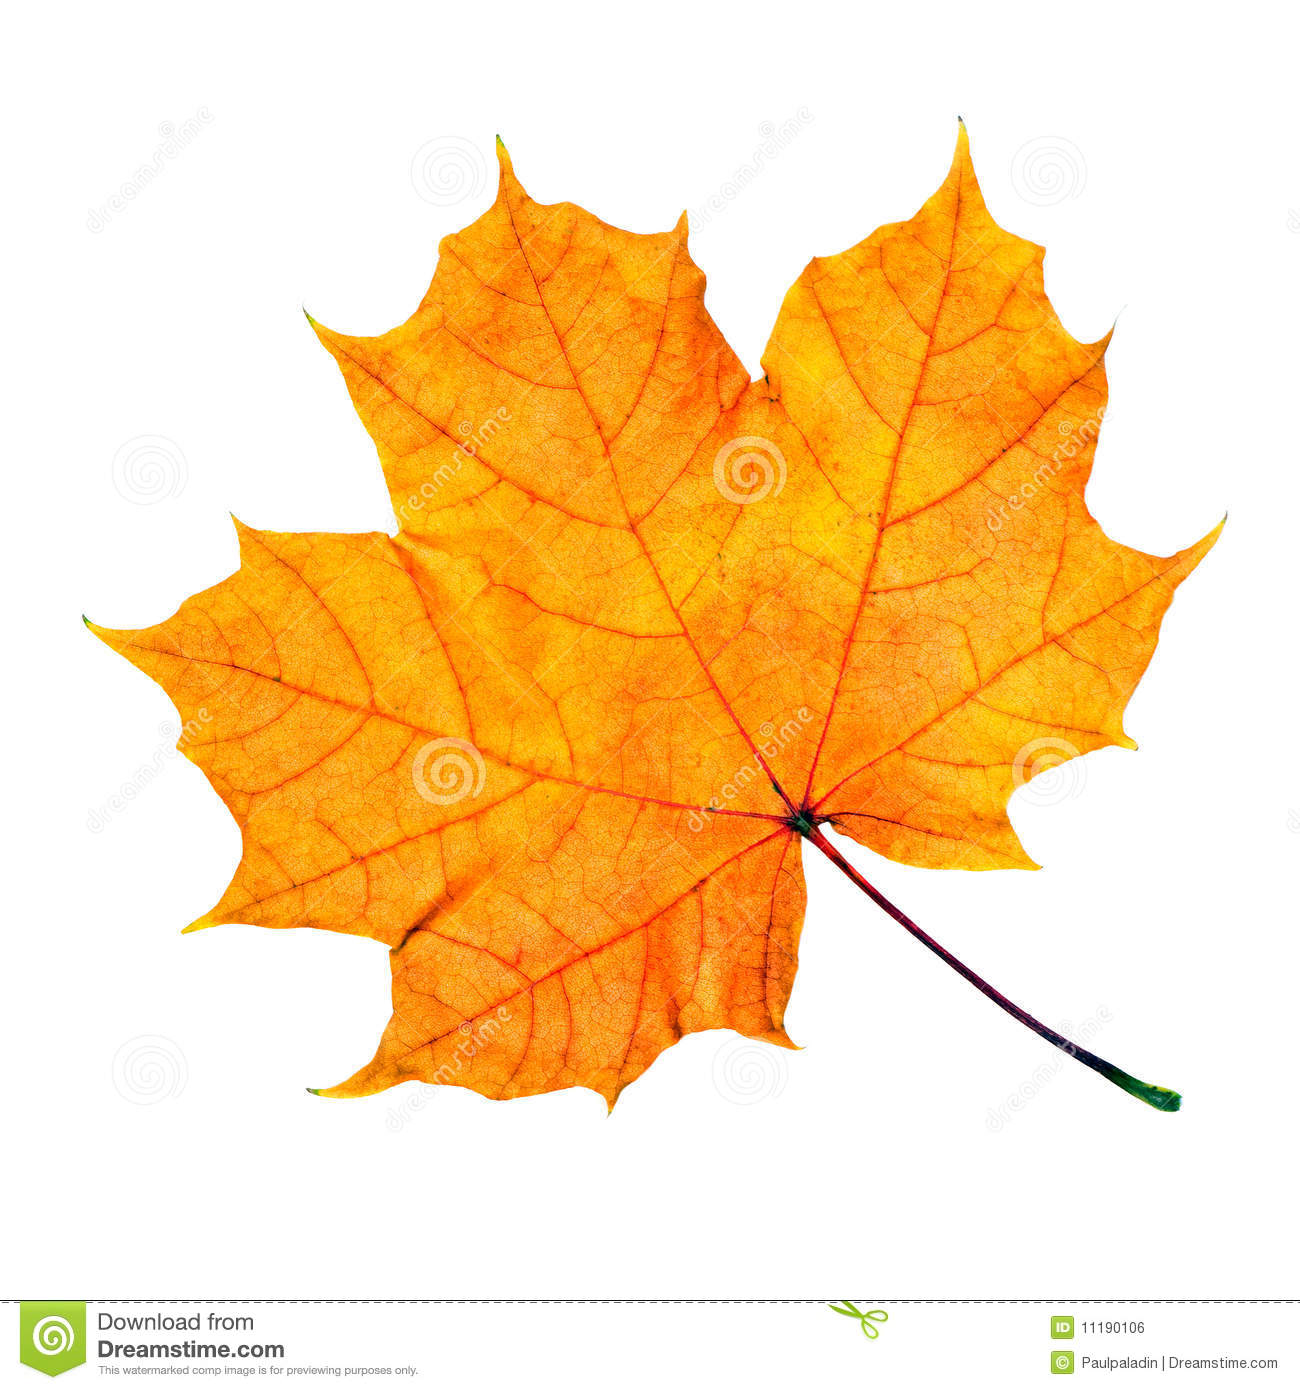 Maple Fall Leaf Royalty Free Stock Image - Image: 11190106